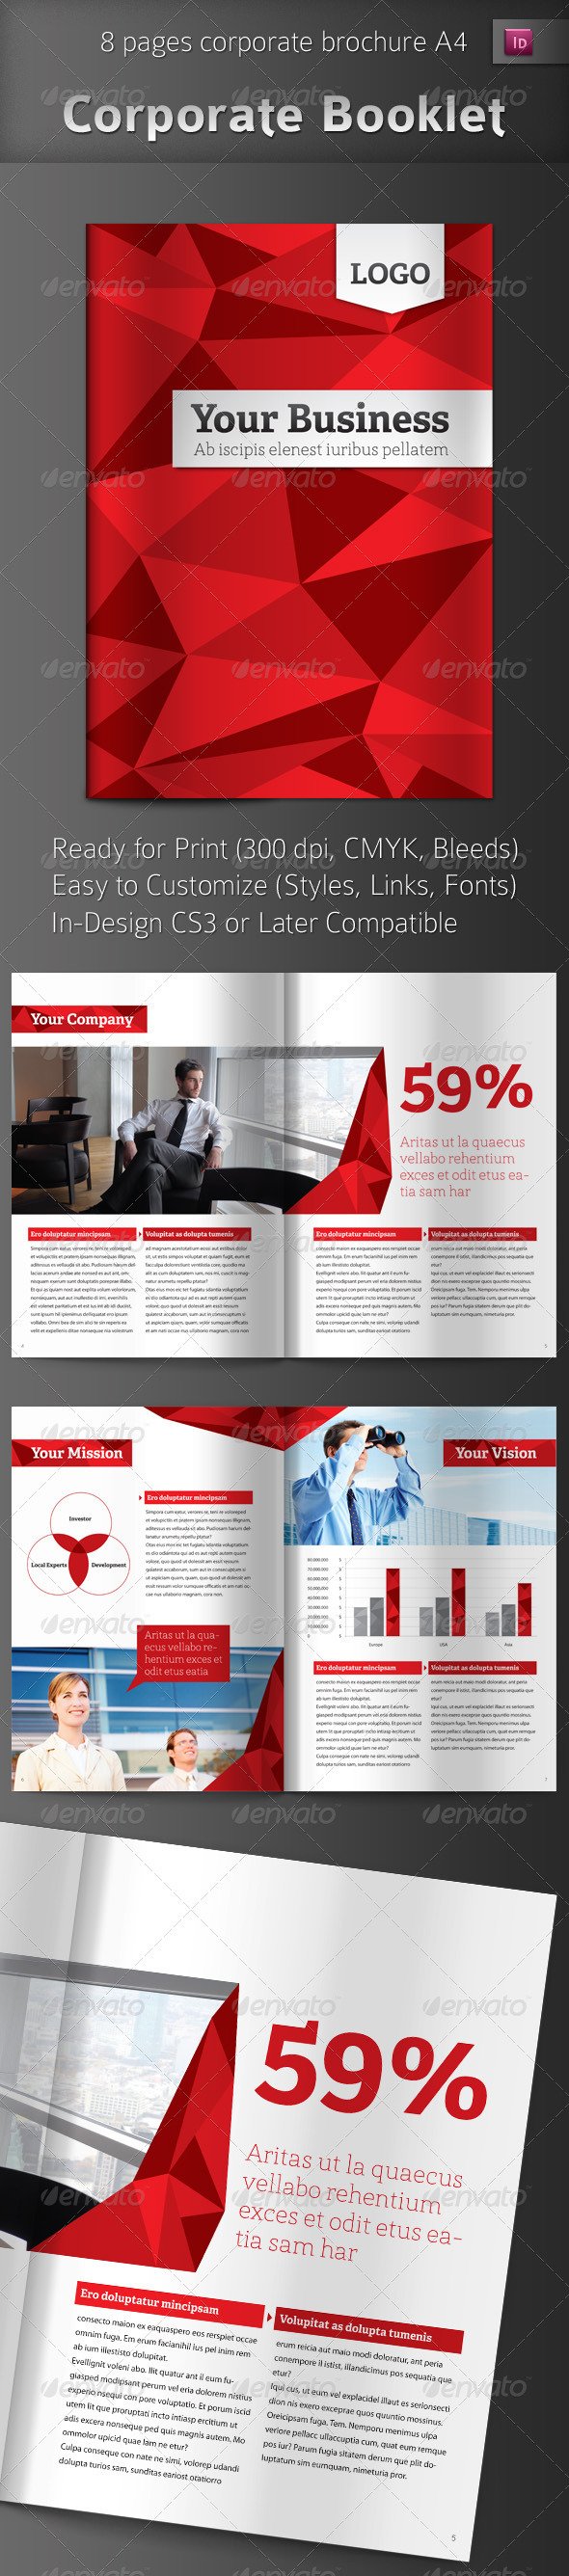 Professional Business Brochure - Corporate Brochures